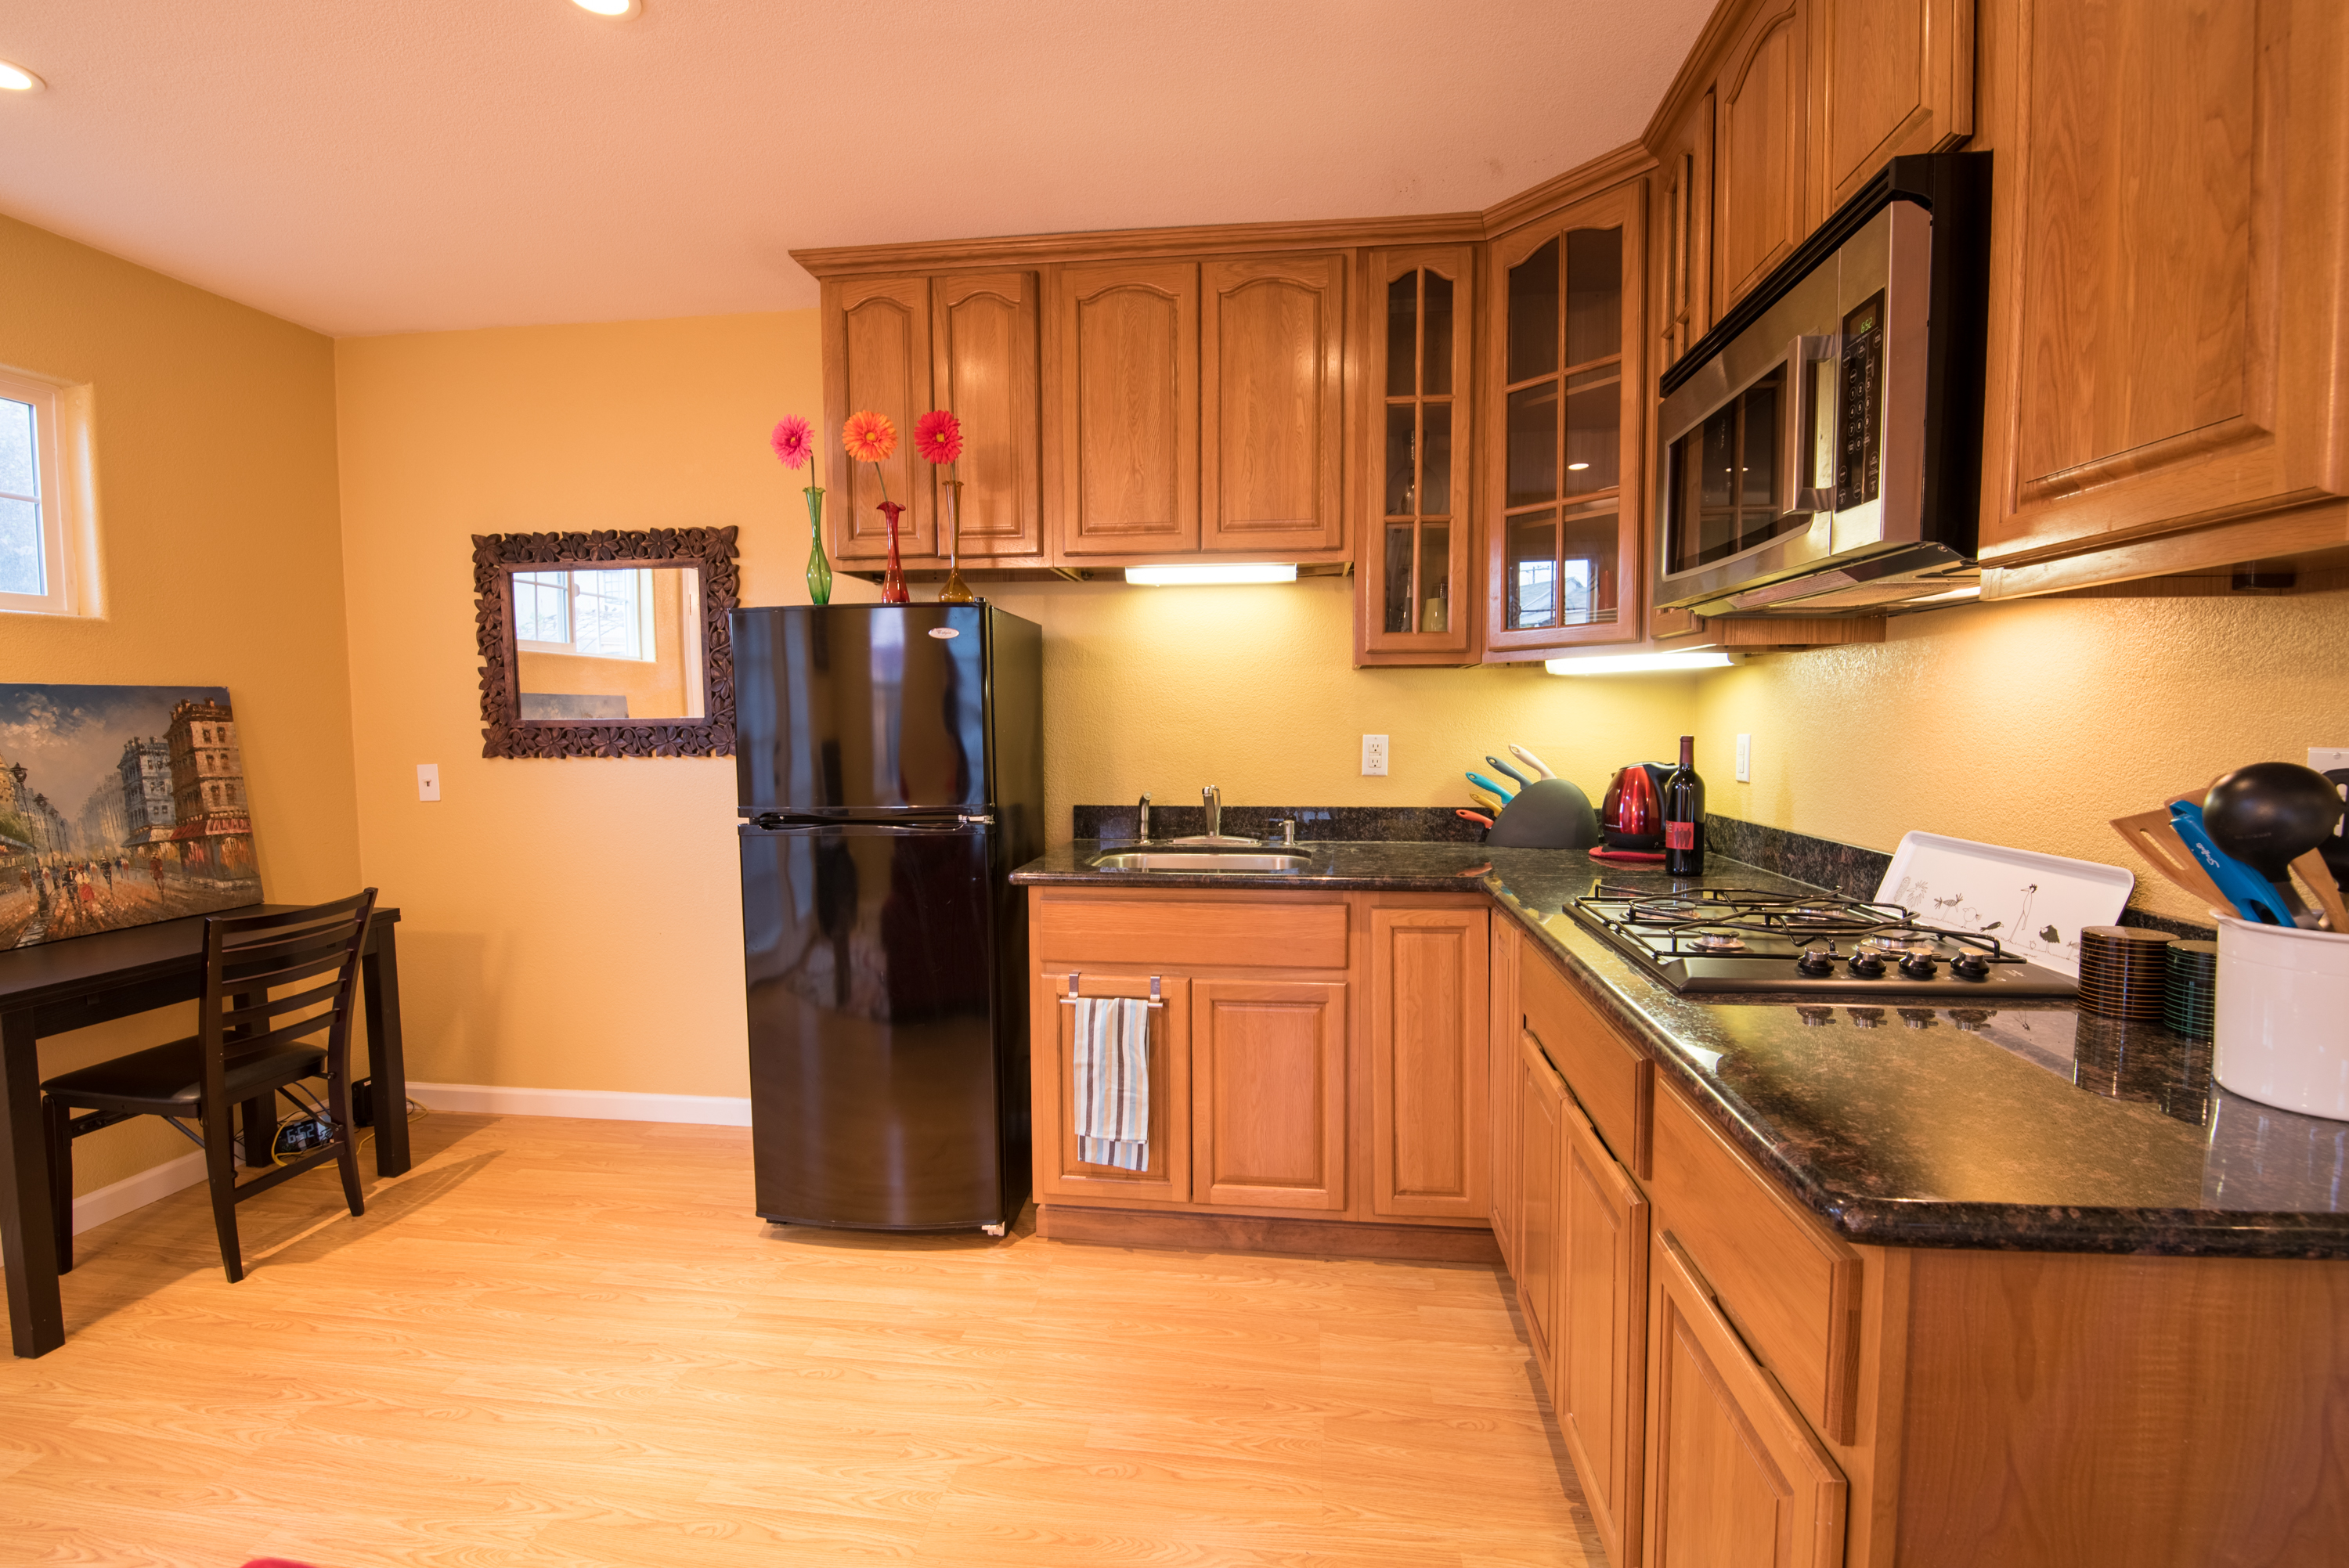 find_kitchen_remodel_photography_photographer_oakland-0030.JPG